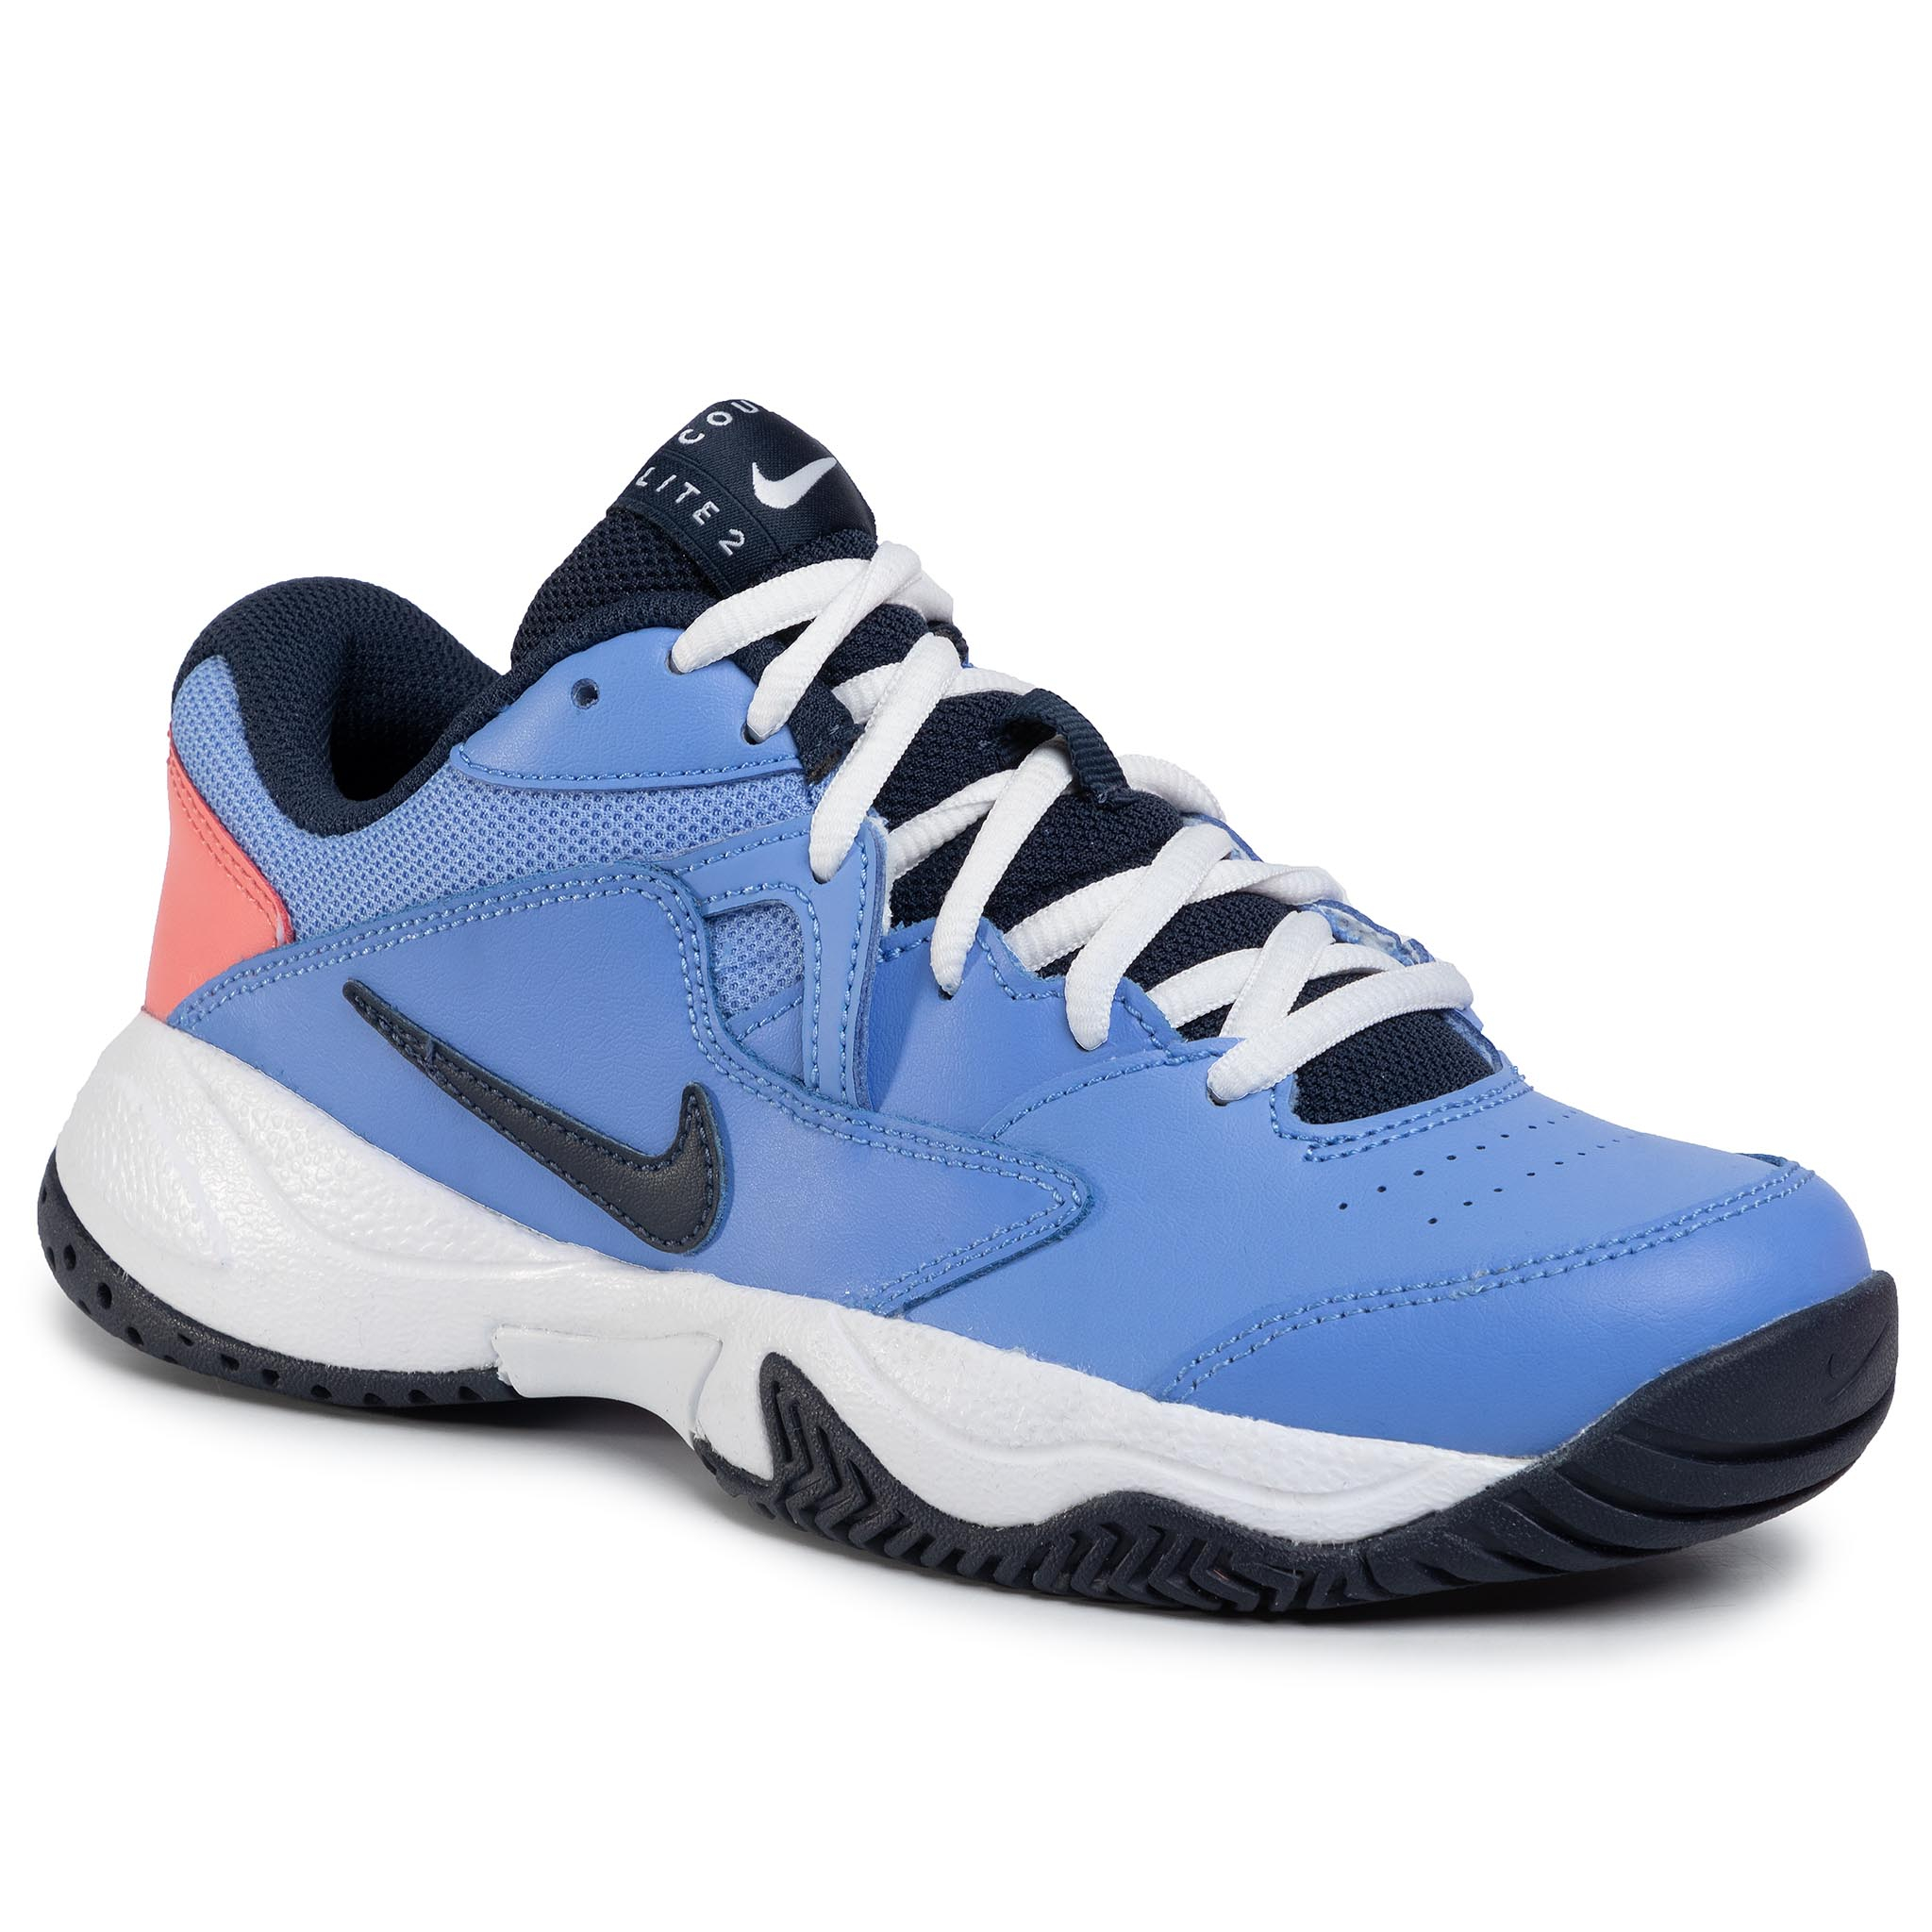 Pantofi Nike - Court Lite 2 Ar8838 406 Royal Pulse/Obsidian/White imagine epantofi.ro 2021